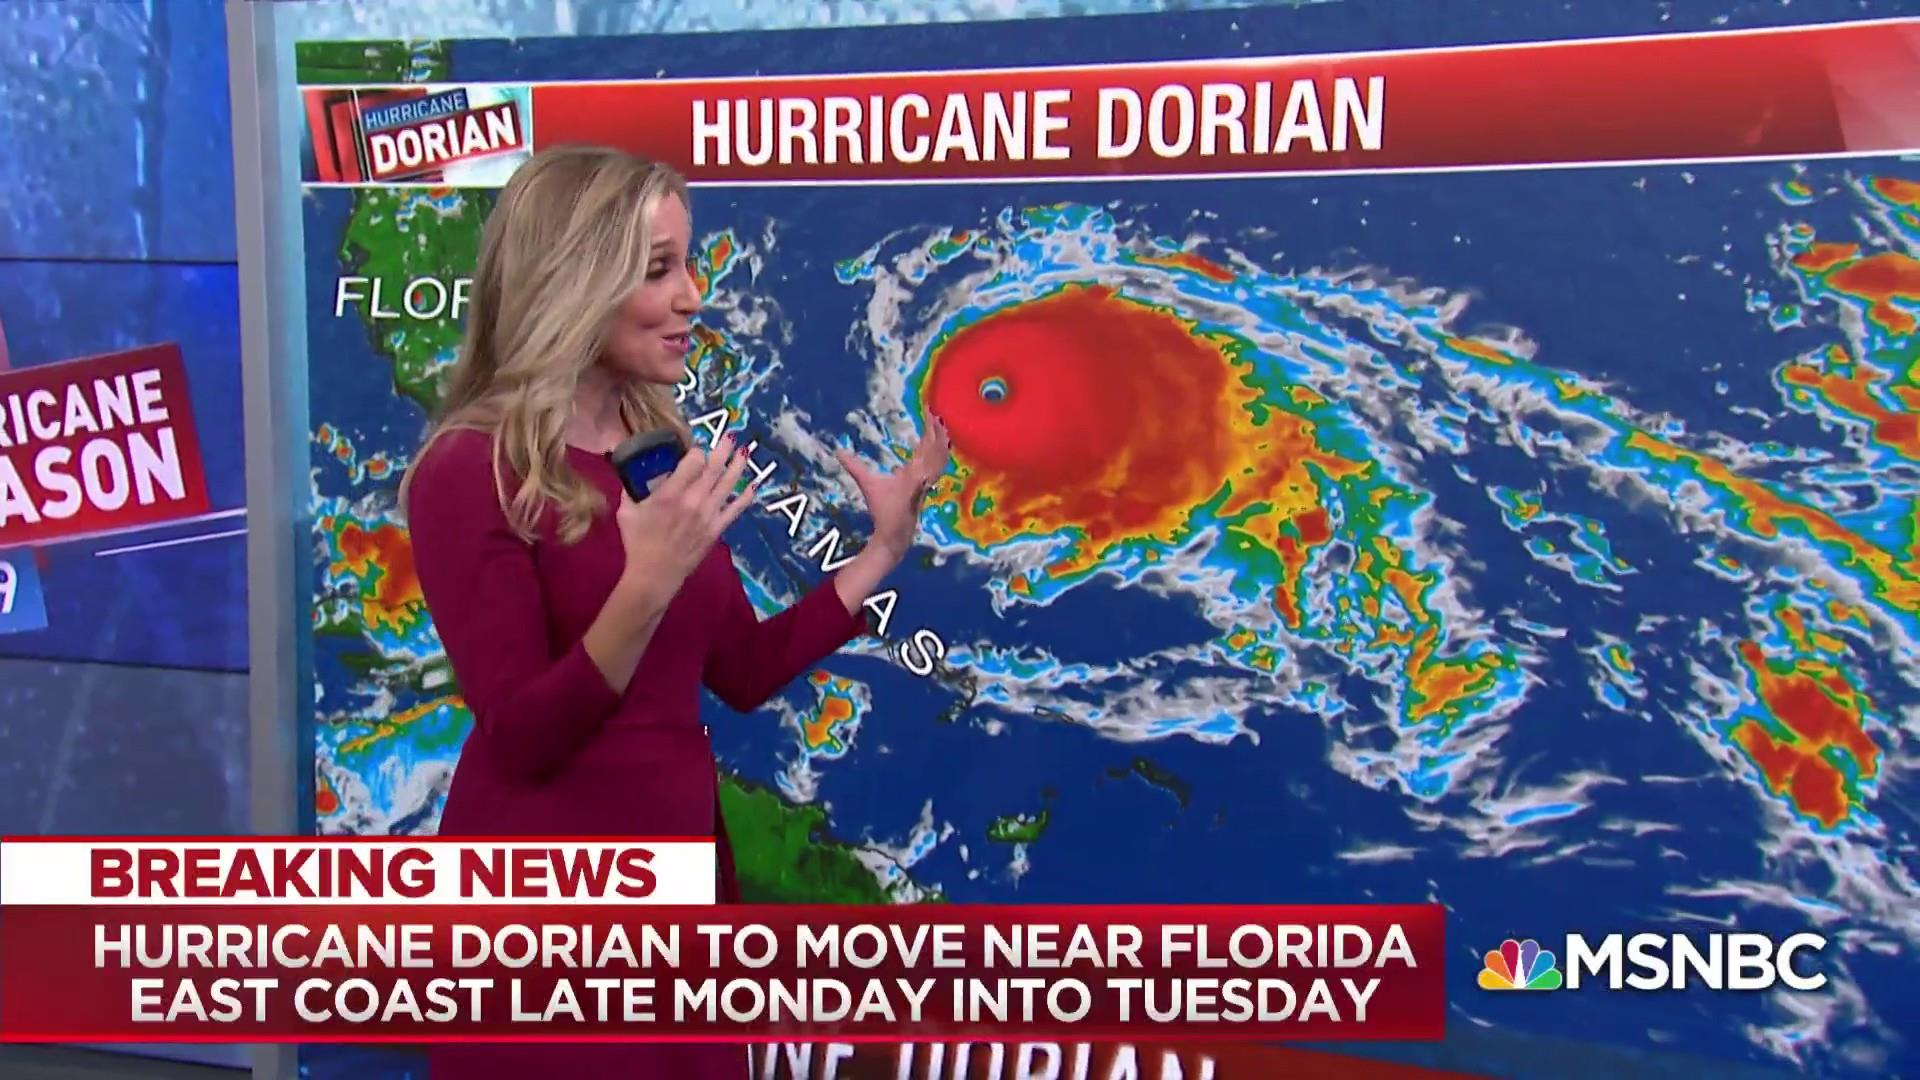 Hurricane Dorian update: Category 4 hurricane expected to slow down as it approaches Bahamas, Atlantic coast